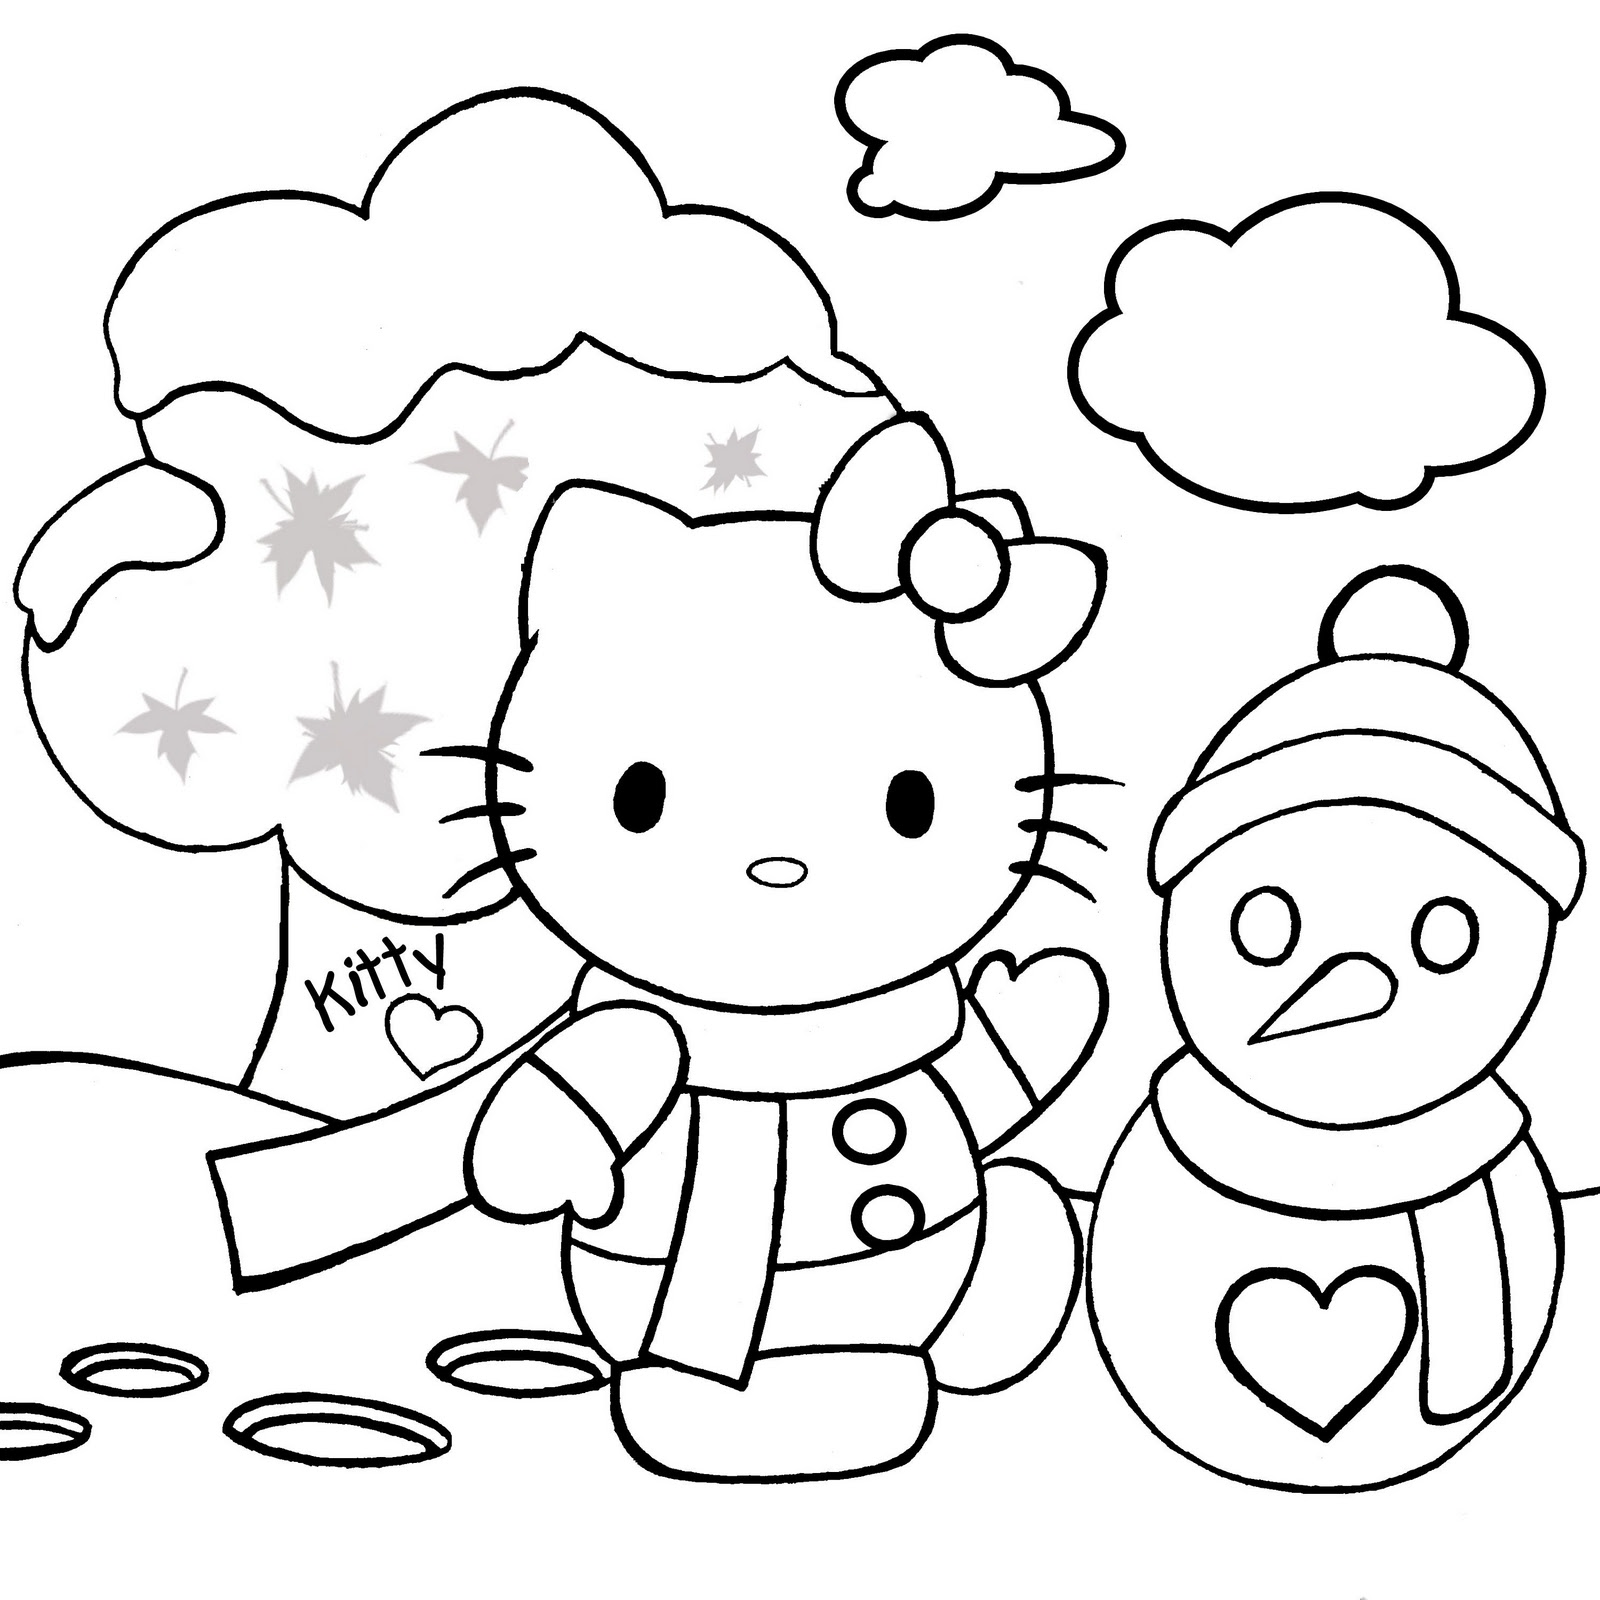 christmas hello kitty coloring pages hello kitty christmas coloring pages 1 hello kitty forever christmas kitty hello pages coloring